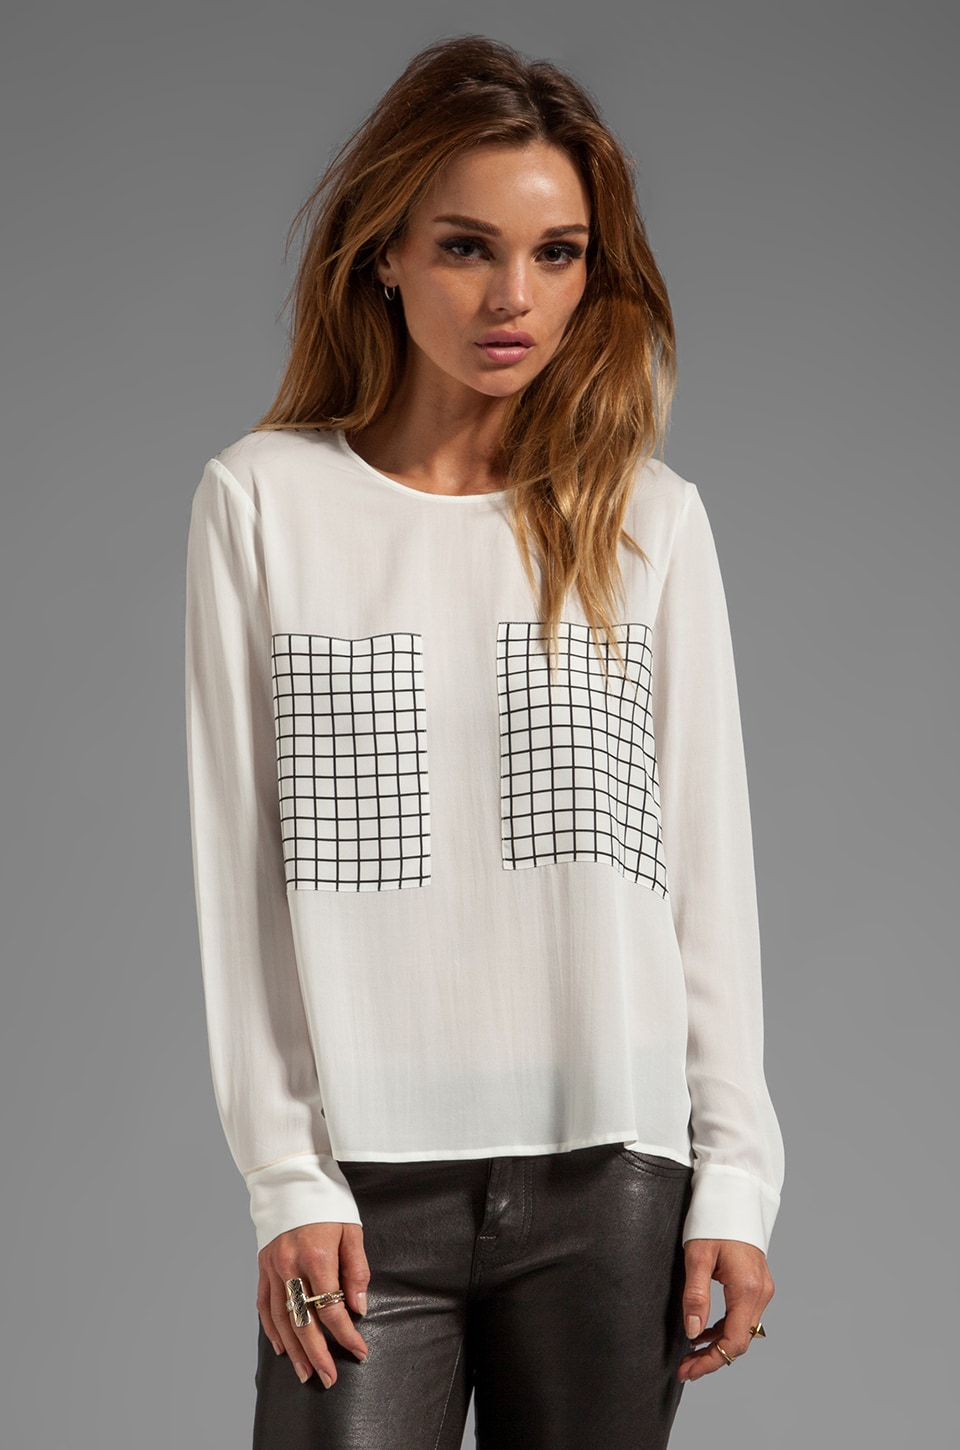 Theory Mariya Crossgrid Blouse in White/Black